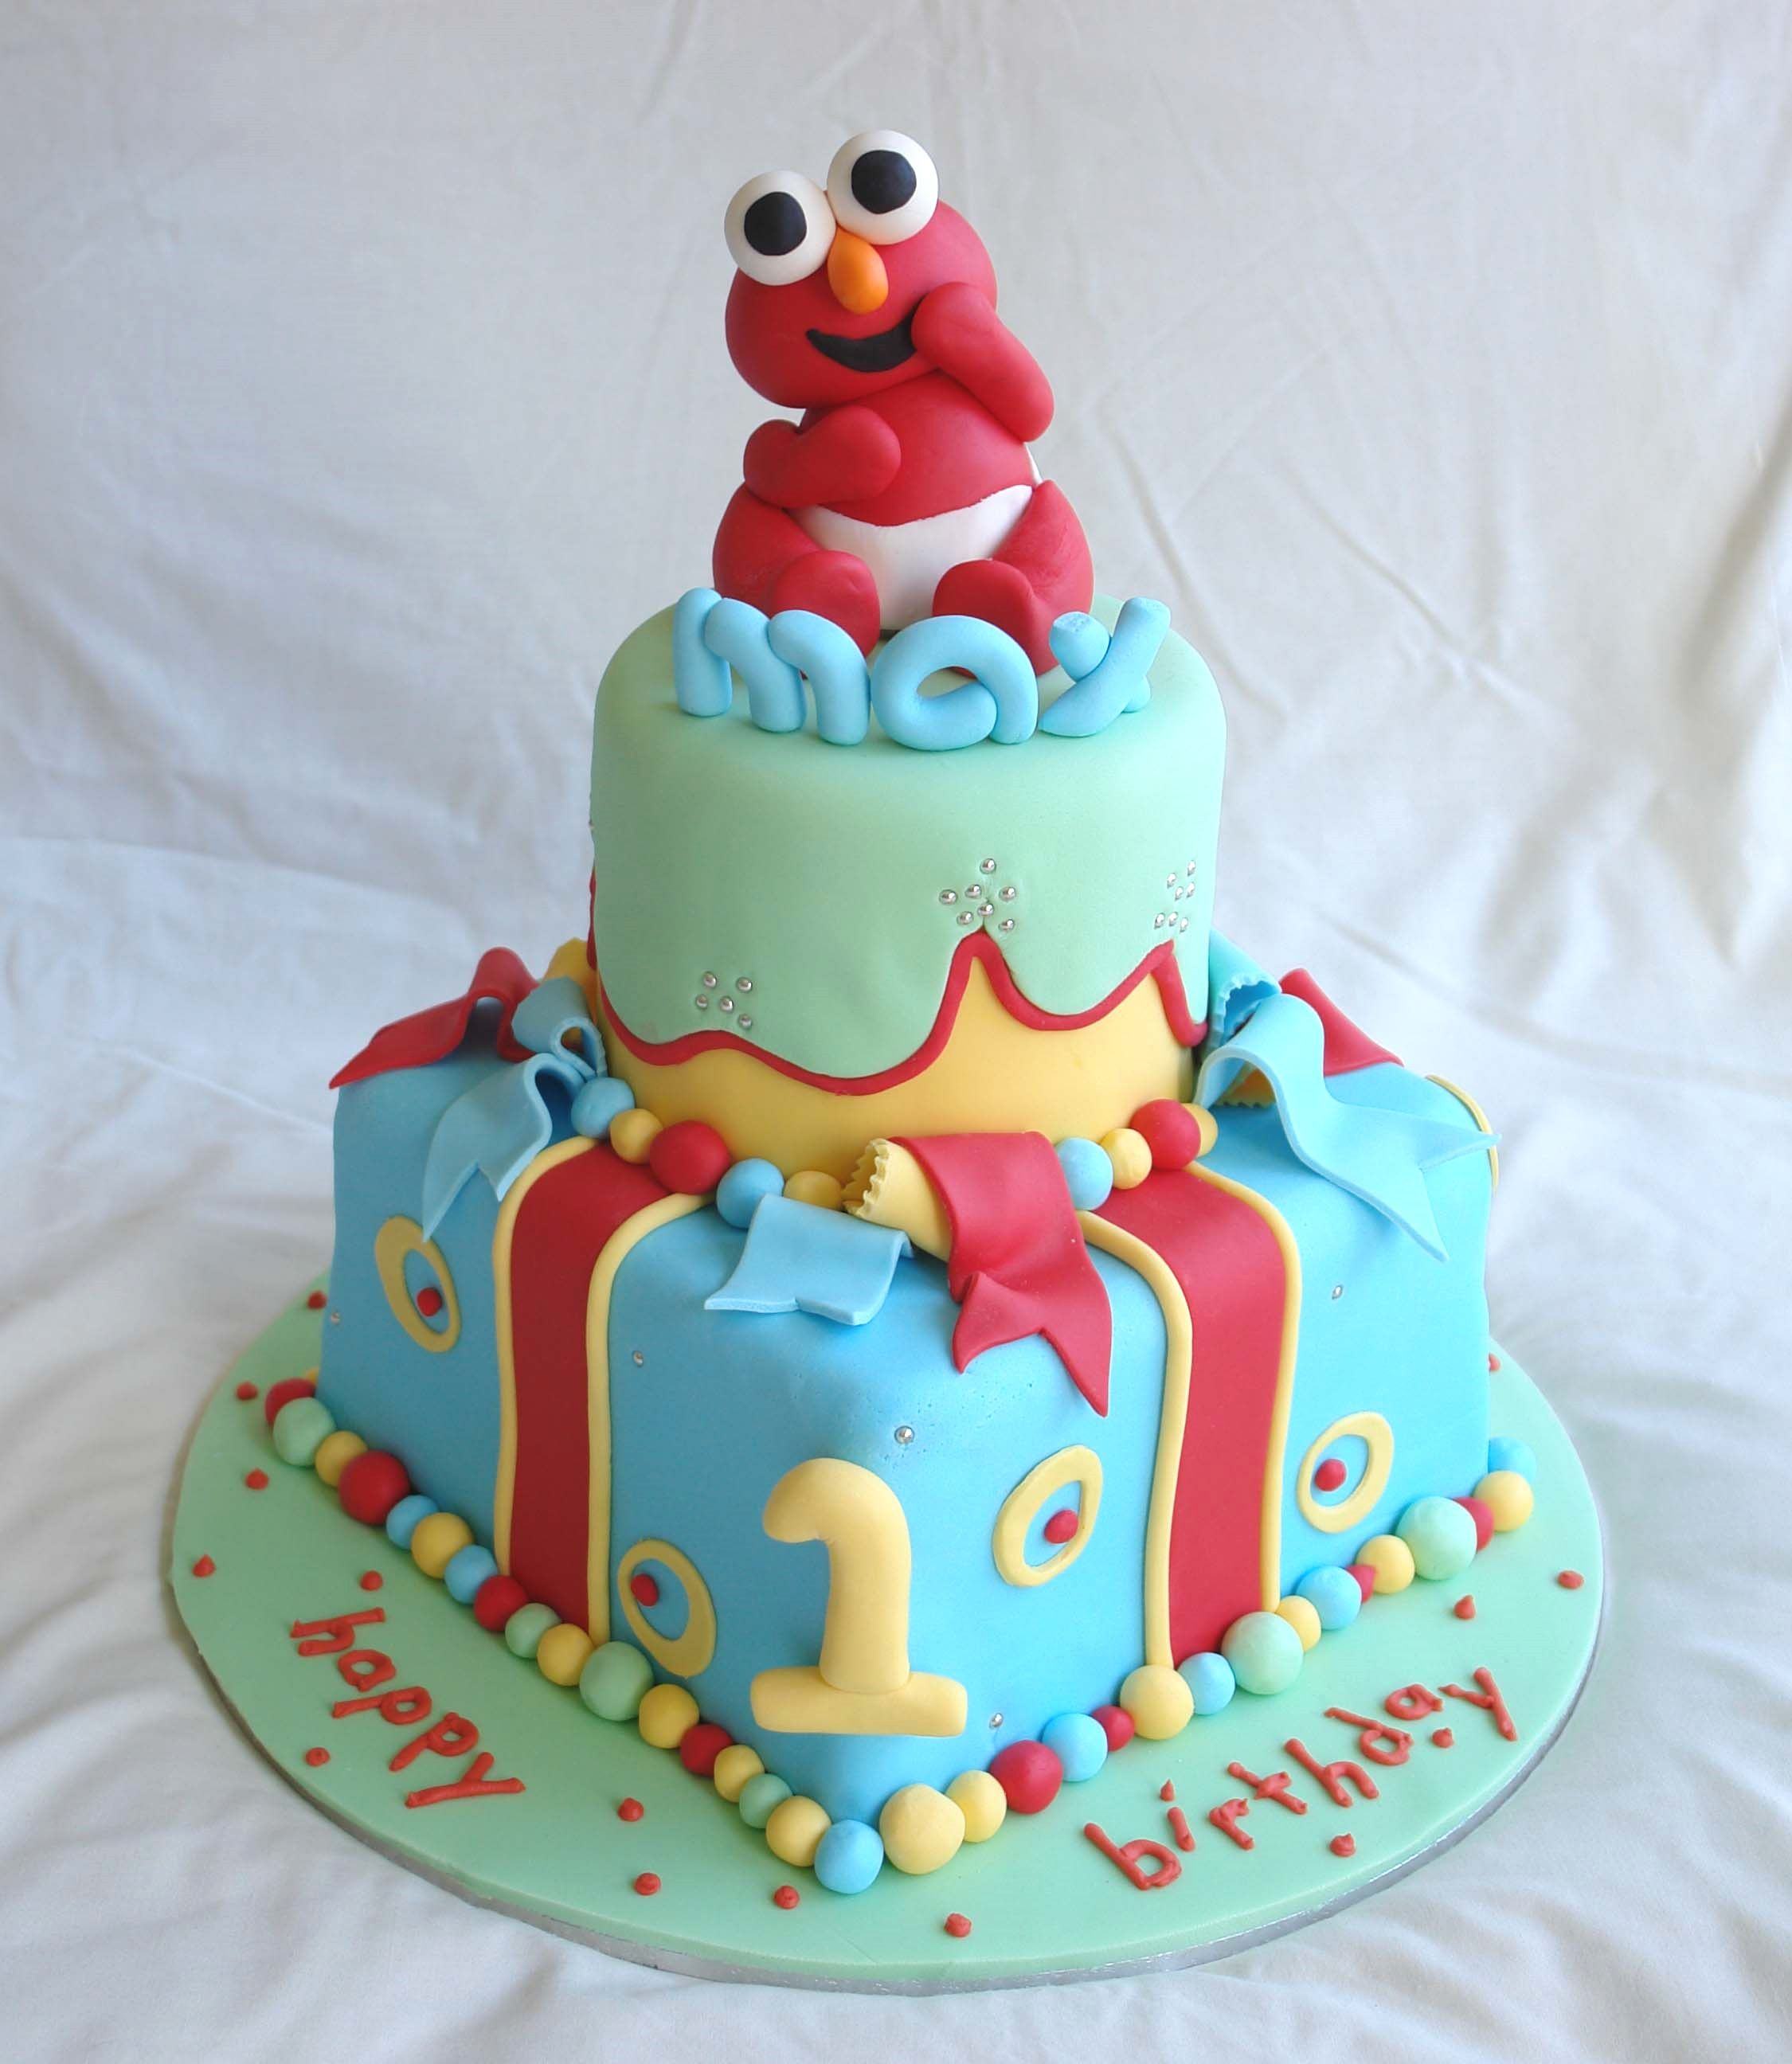 Peachy Birthday Cakes By Mail Baby Birthday Cakes Elmo Birthday Cake Funny Birthday Cards Online Alyptdamsfinfo